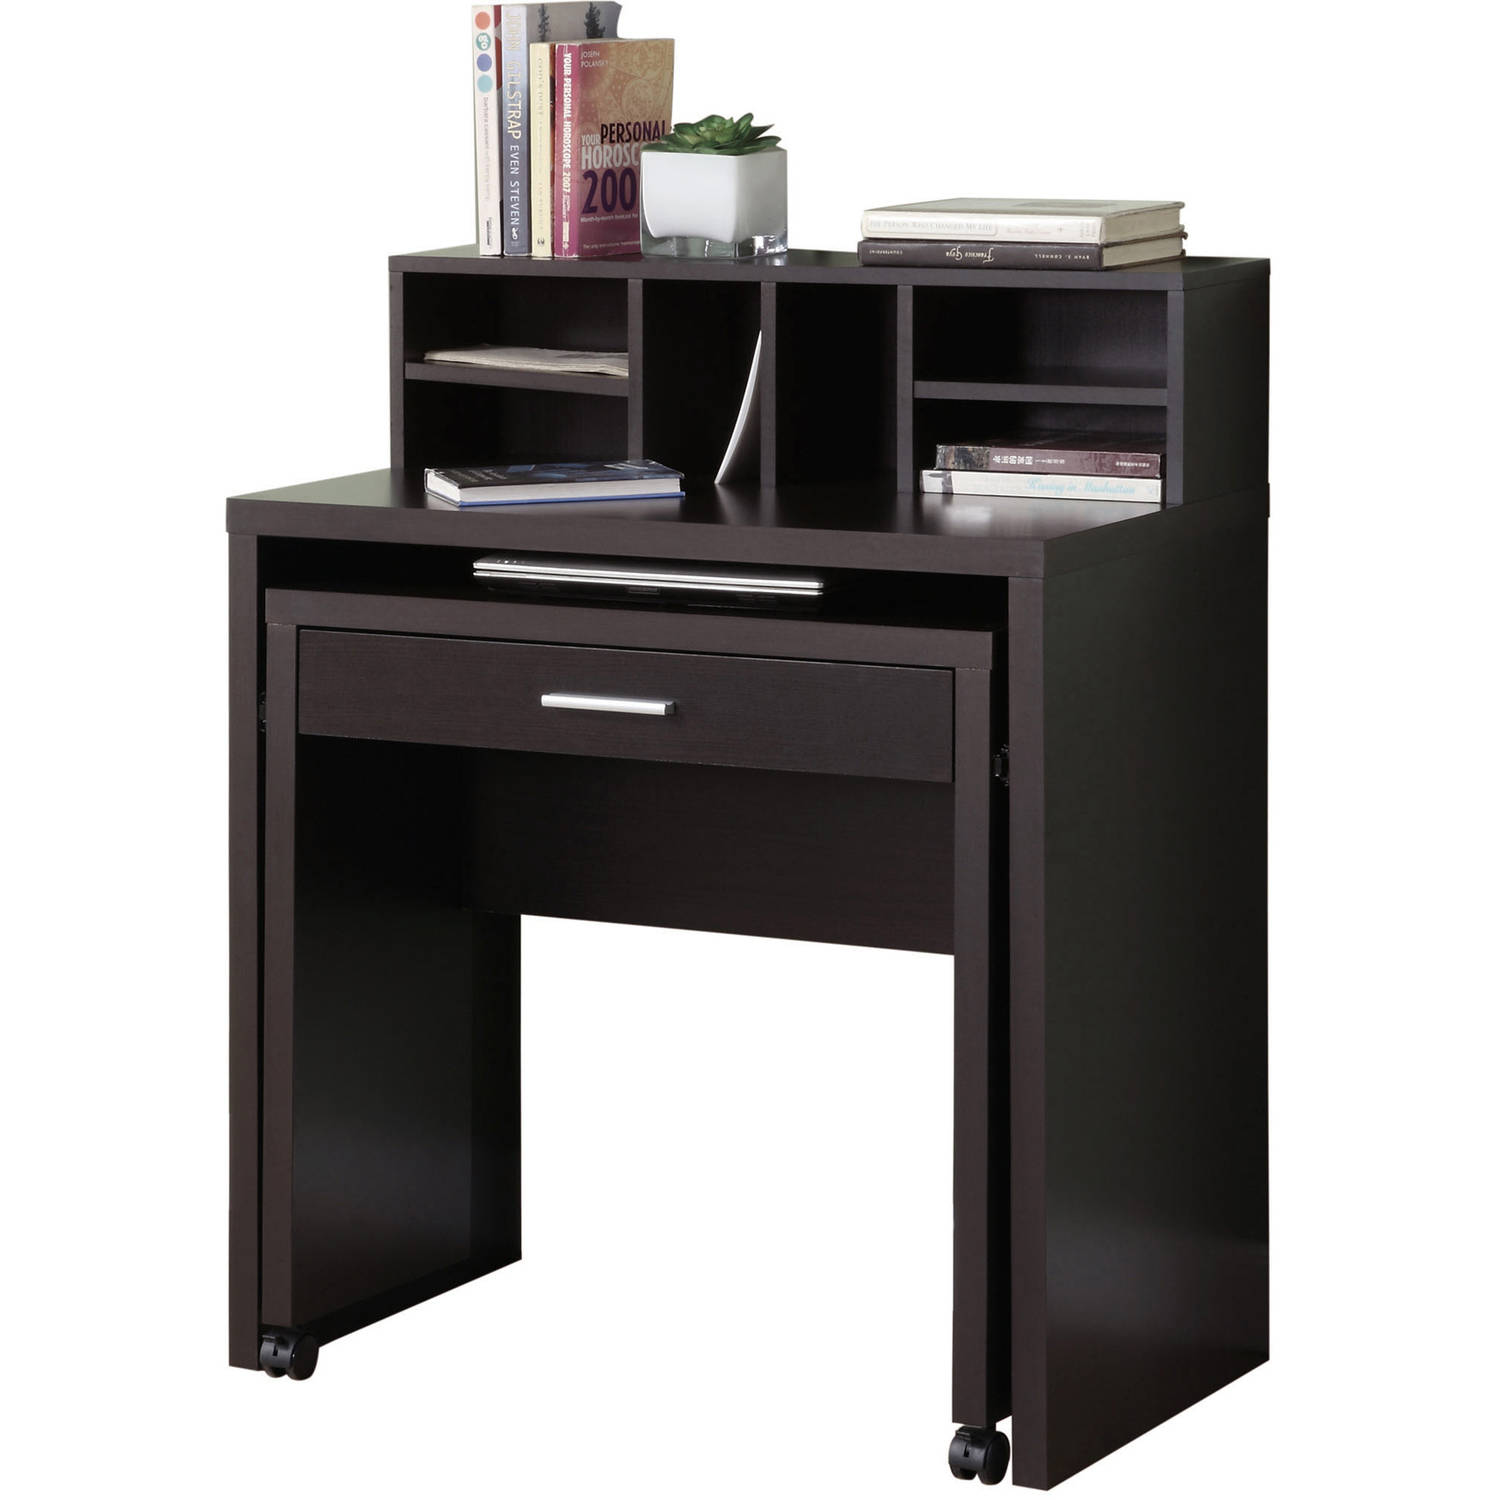 MONARCH - COMPUTER DESK - CAPPUCCINO SPACESAVER WITH OPEN STORAGE